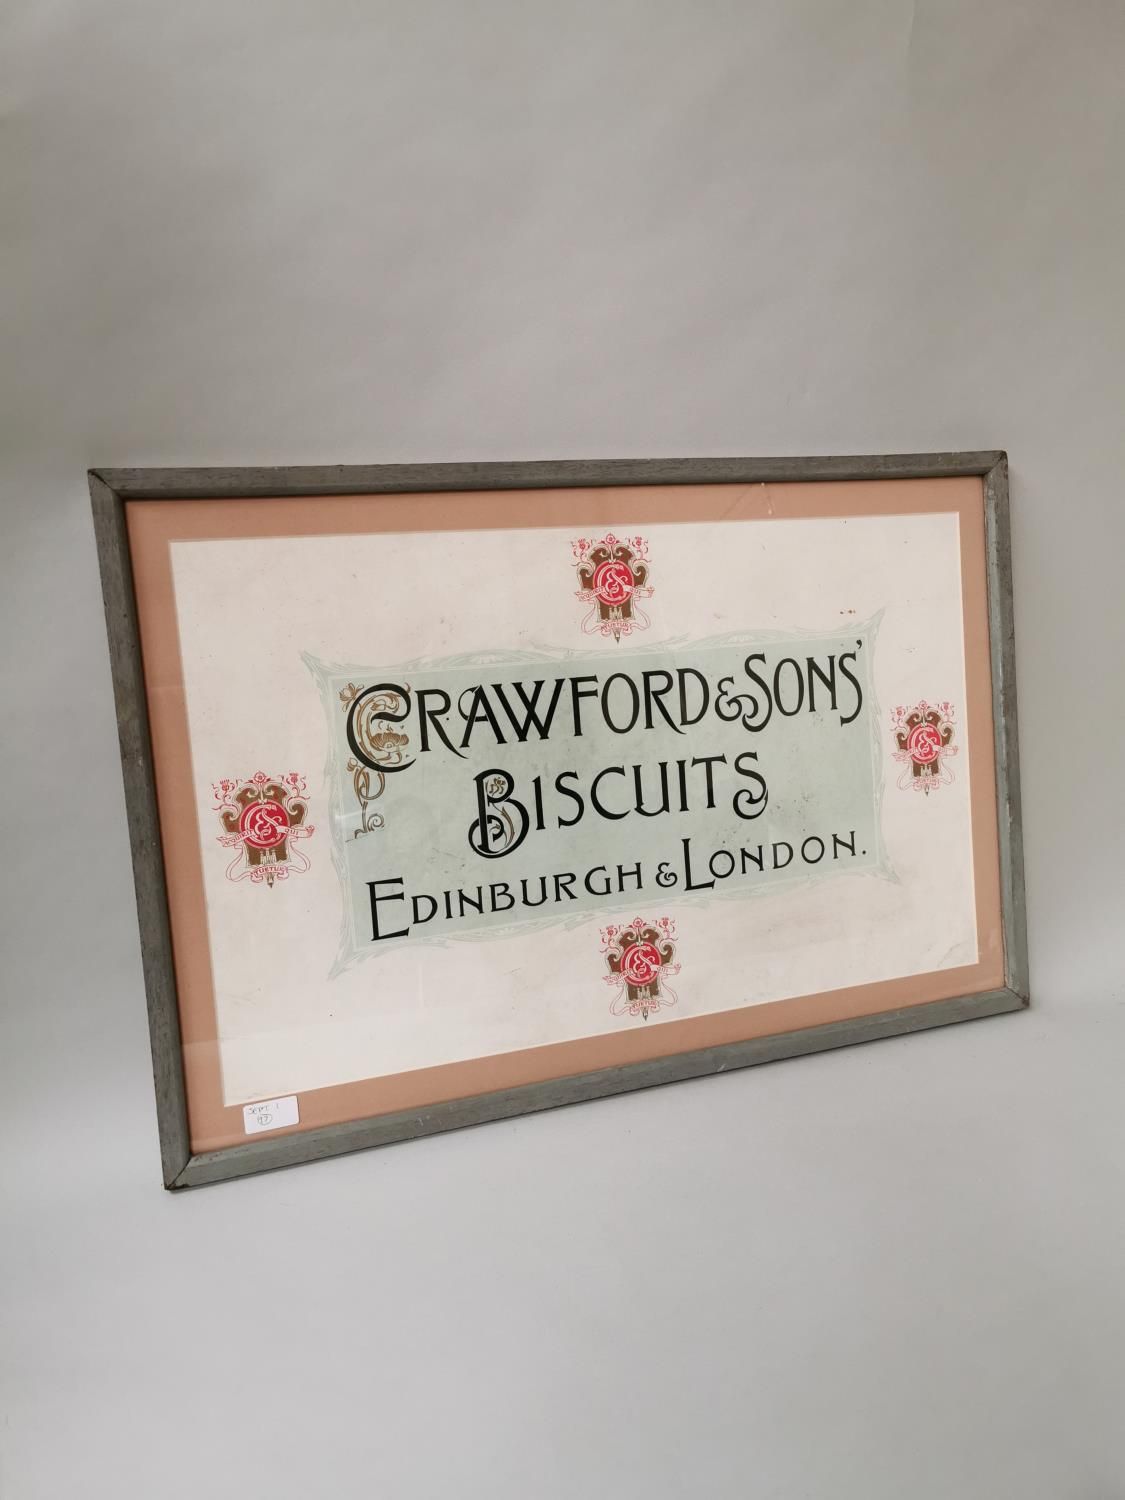 Crawford's & Sons Biscuits framed advertisement.